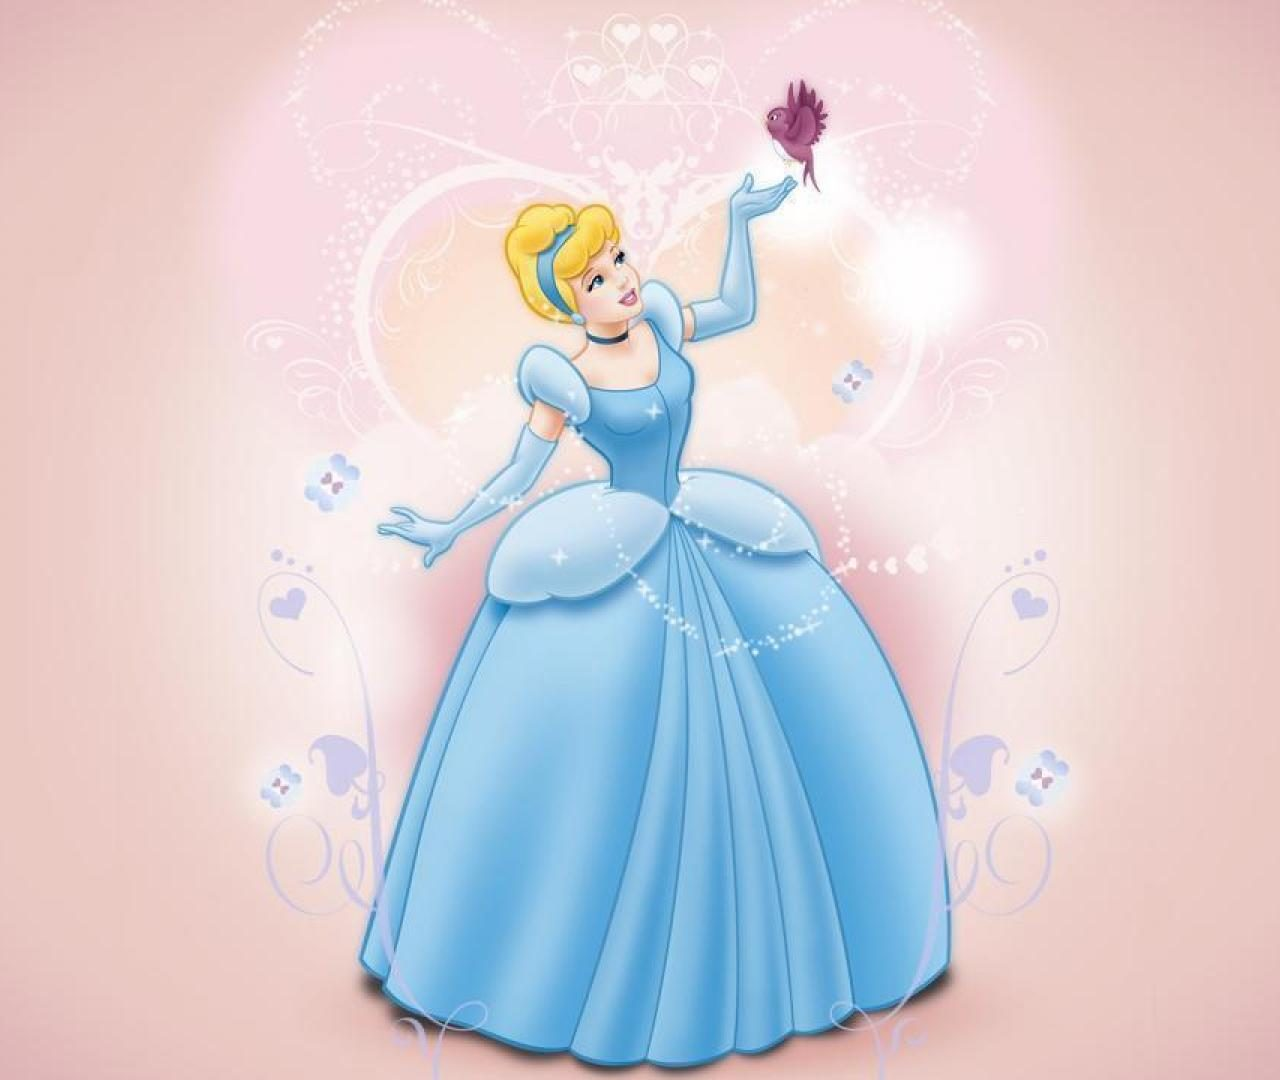 Princess Quotes Wallpaper Disney Princess 1920 215 1080 Hd Wallpapers Hd Backgrounds